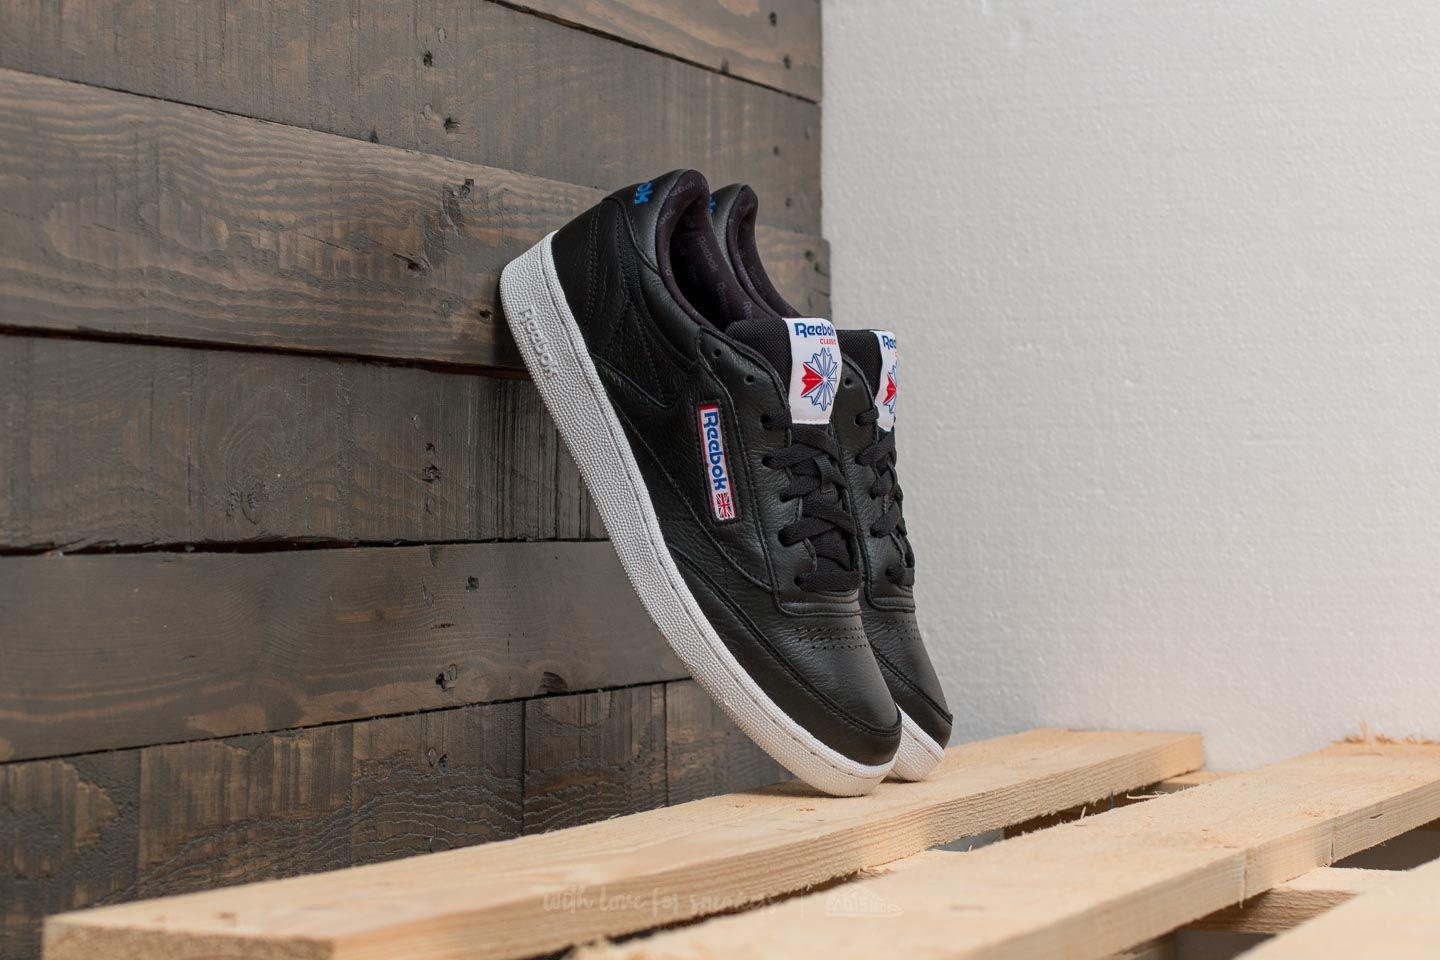 6a349f8cf66 Lyst - Reebok Reebok Club C 85 So Black  White  Vital Blue in Black ...